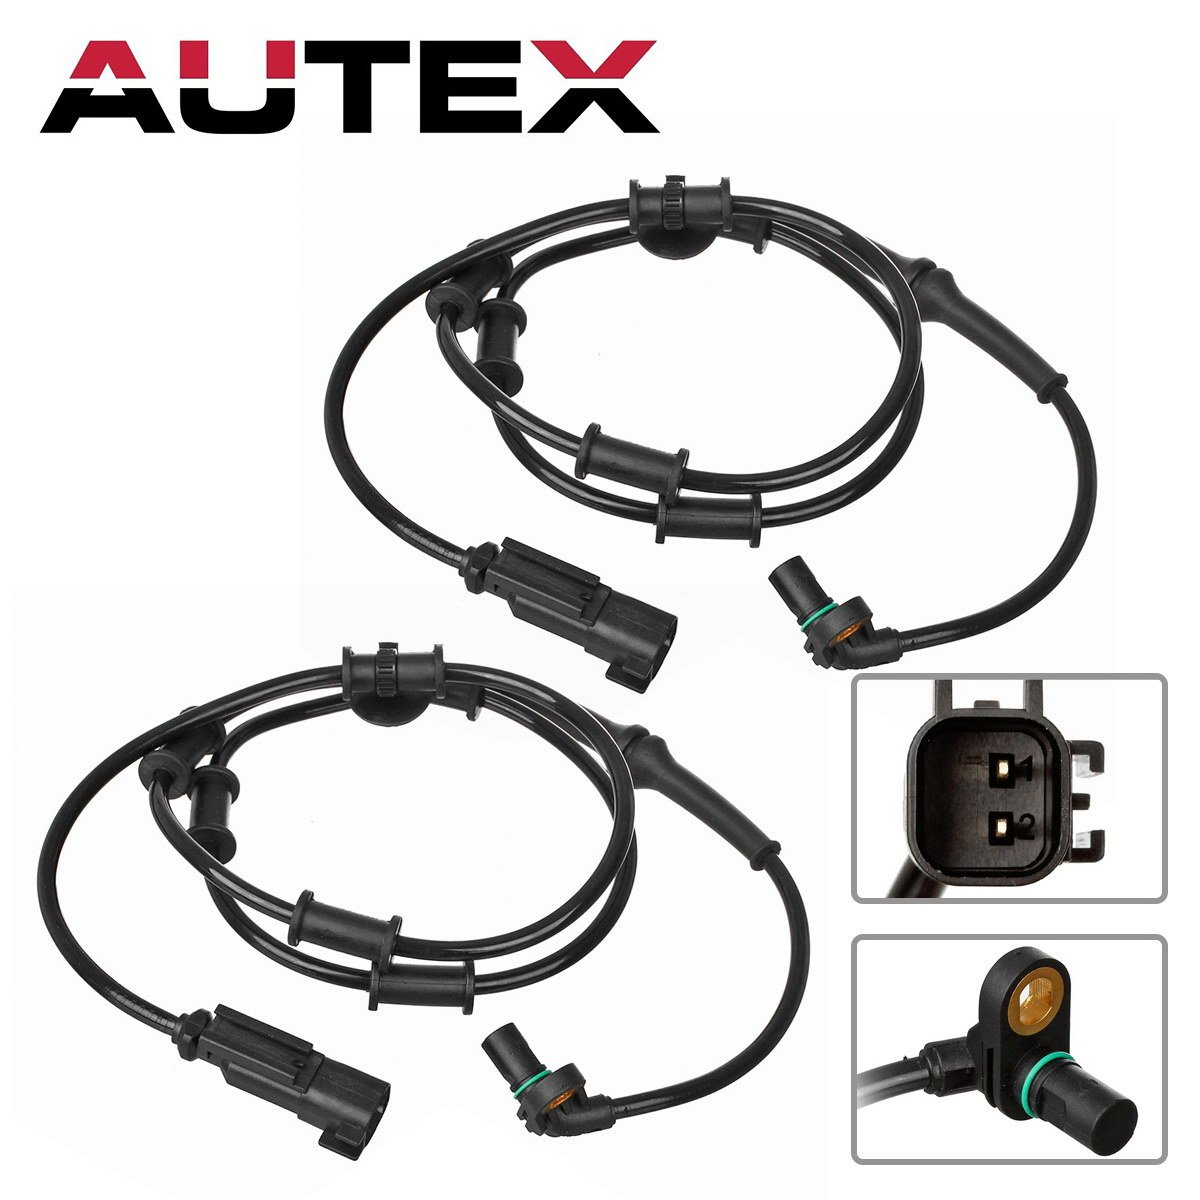 AUTEX 2PCS ABS Wheel Speed Sensor Front Left & Right ALS1984 5179958AA 5179958AB compatible with 2008 Dodge Ram 1500 4WD Quad Cab 2006 2007 2008 Dodge Ram 2500 4WD 2006 2007 2008 Dodge Ram 3500 4WD